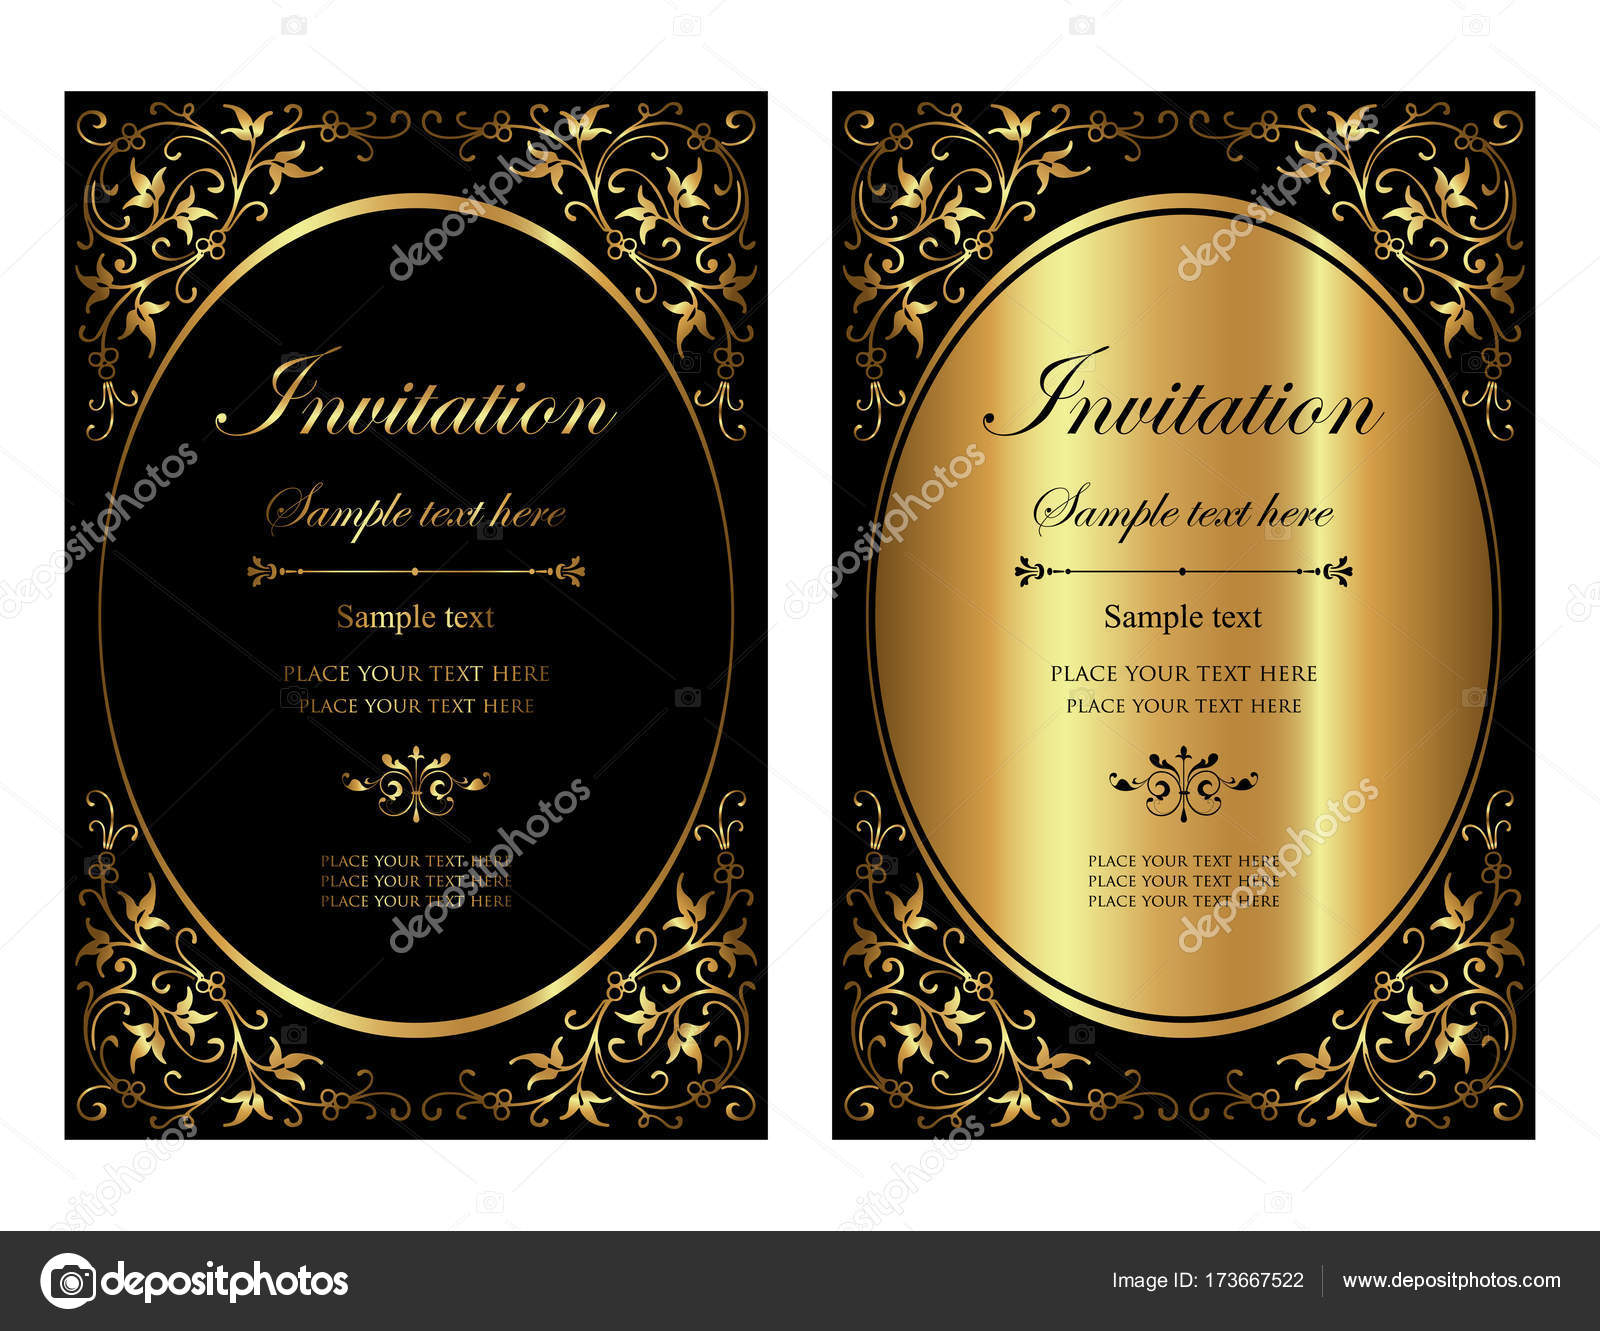 Invitation card design - luxury black and gold vintage style — Stock Vector  © bluepencil #173667522